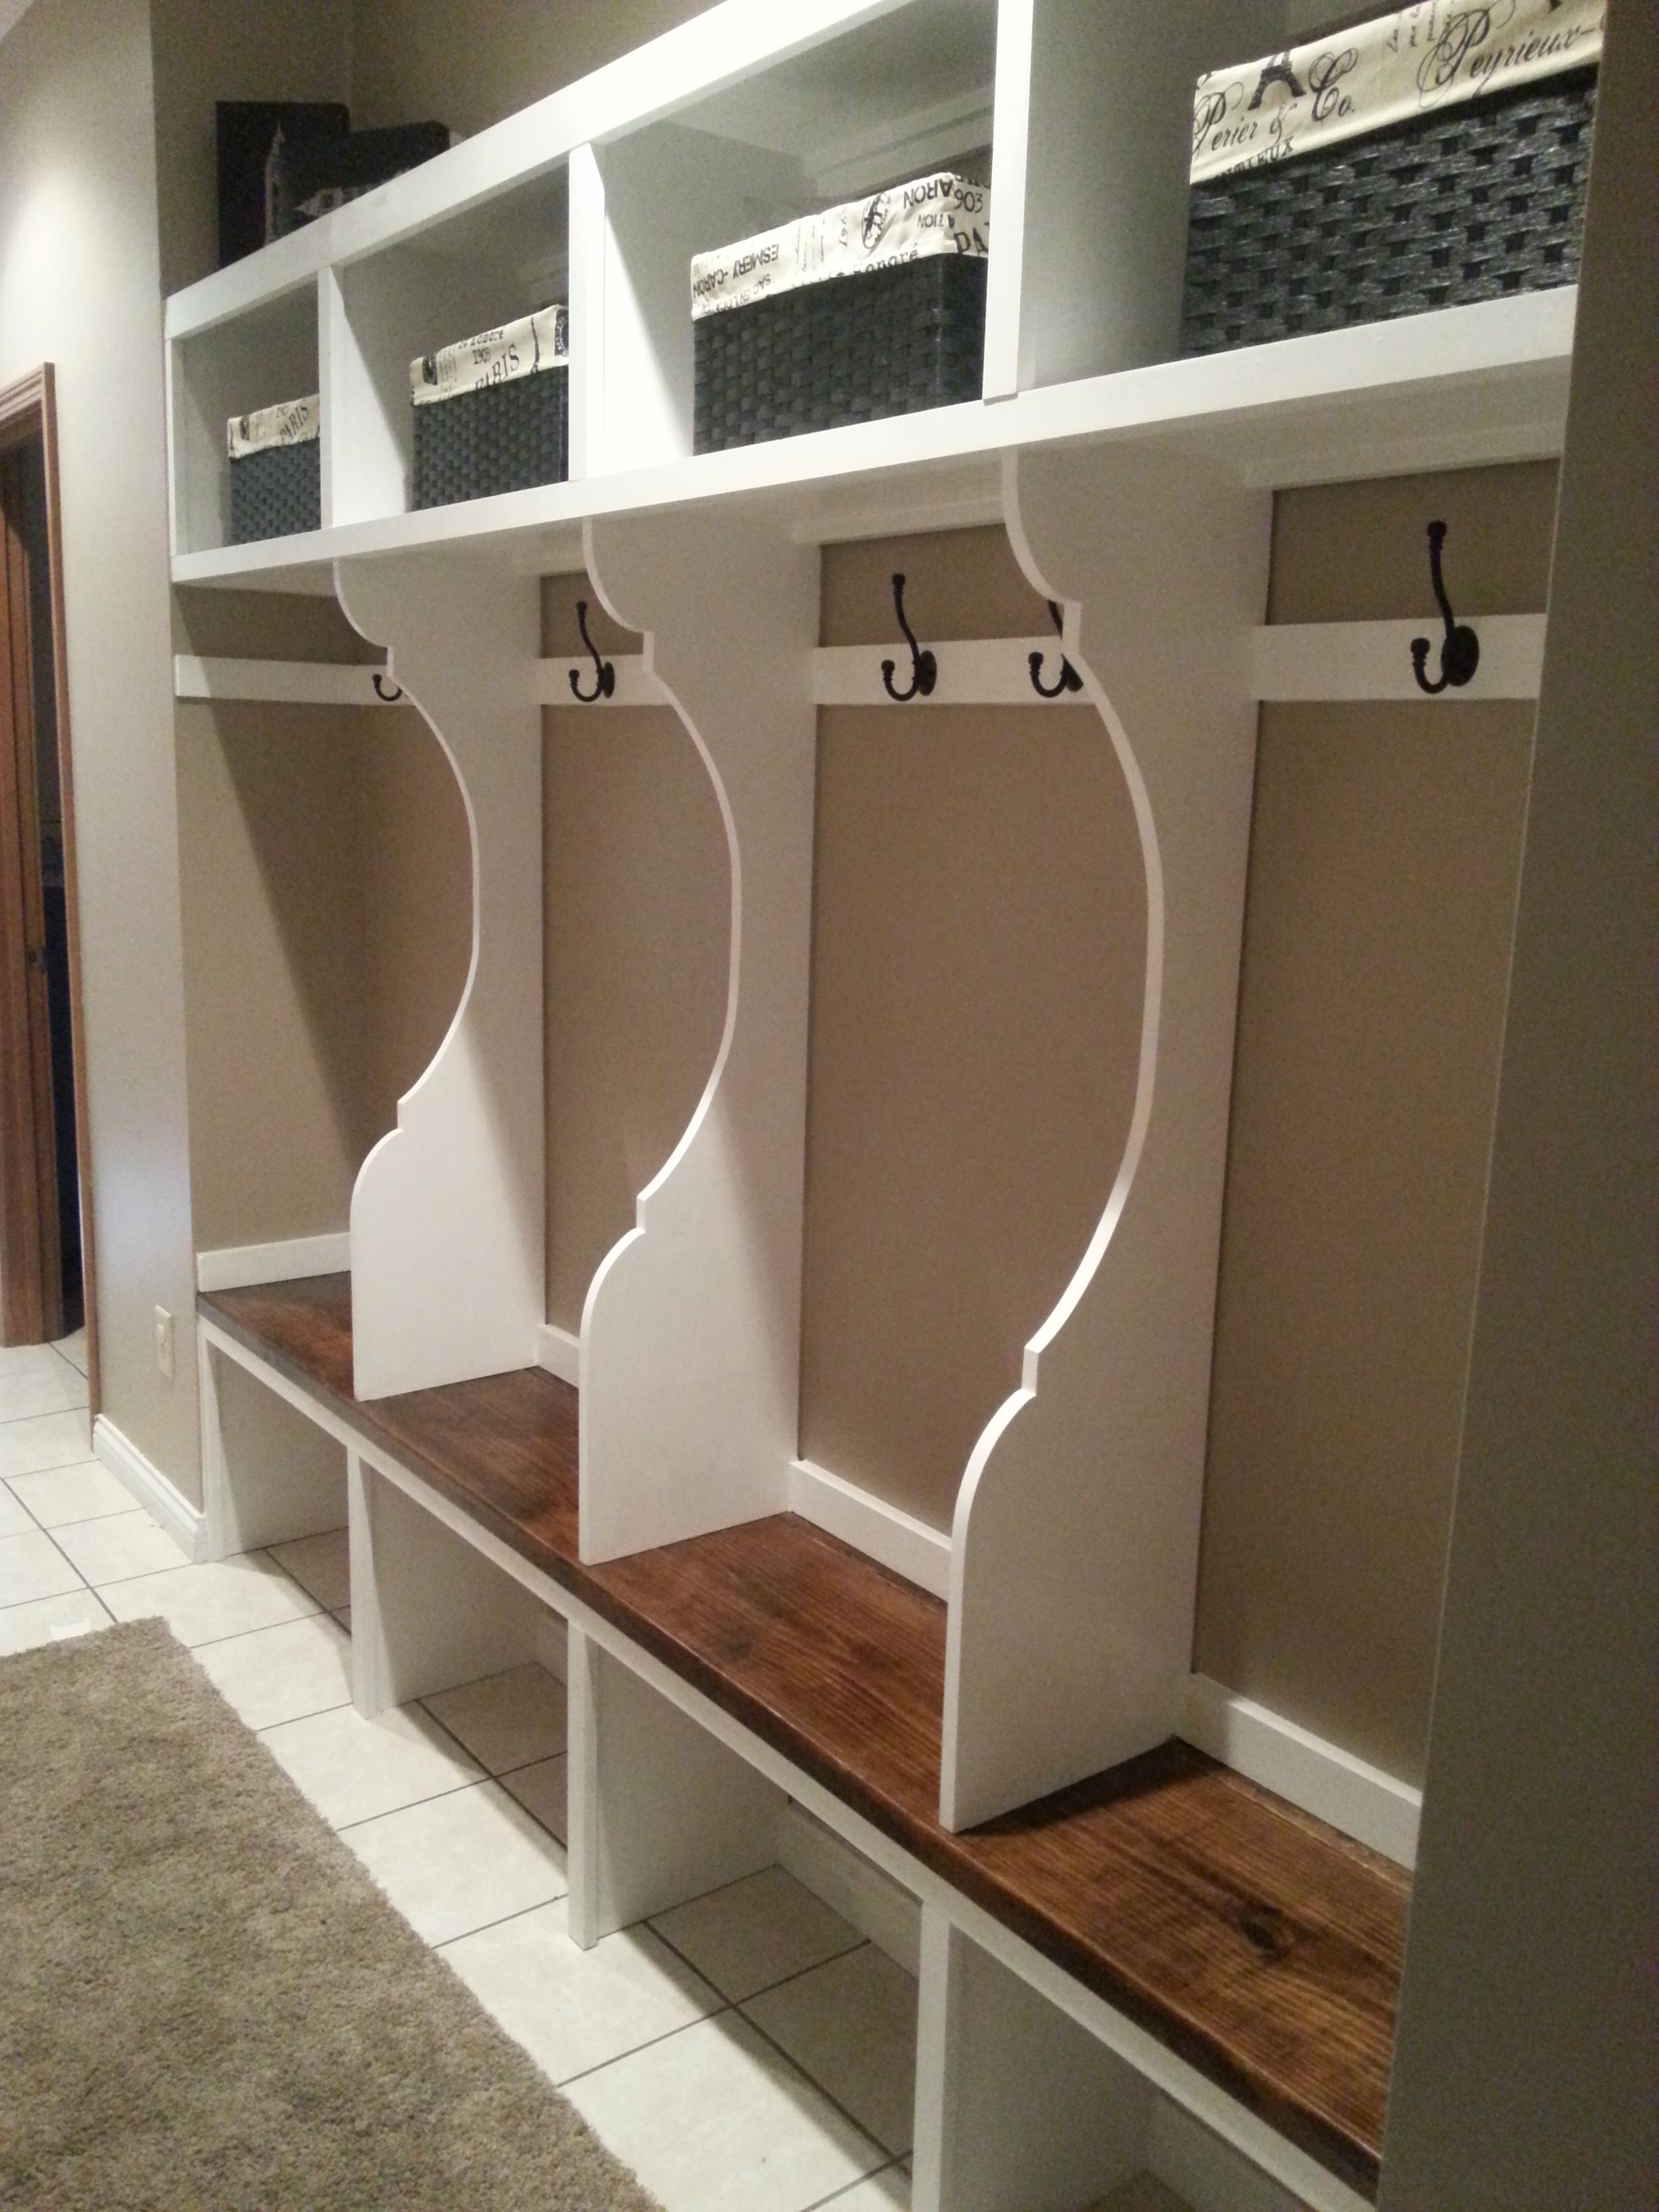 Garage Lockers On Pinterest Cabinets Mud Room